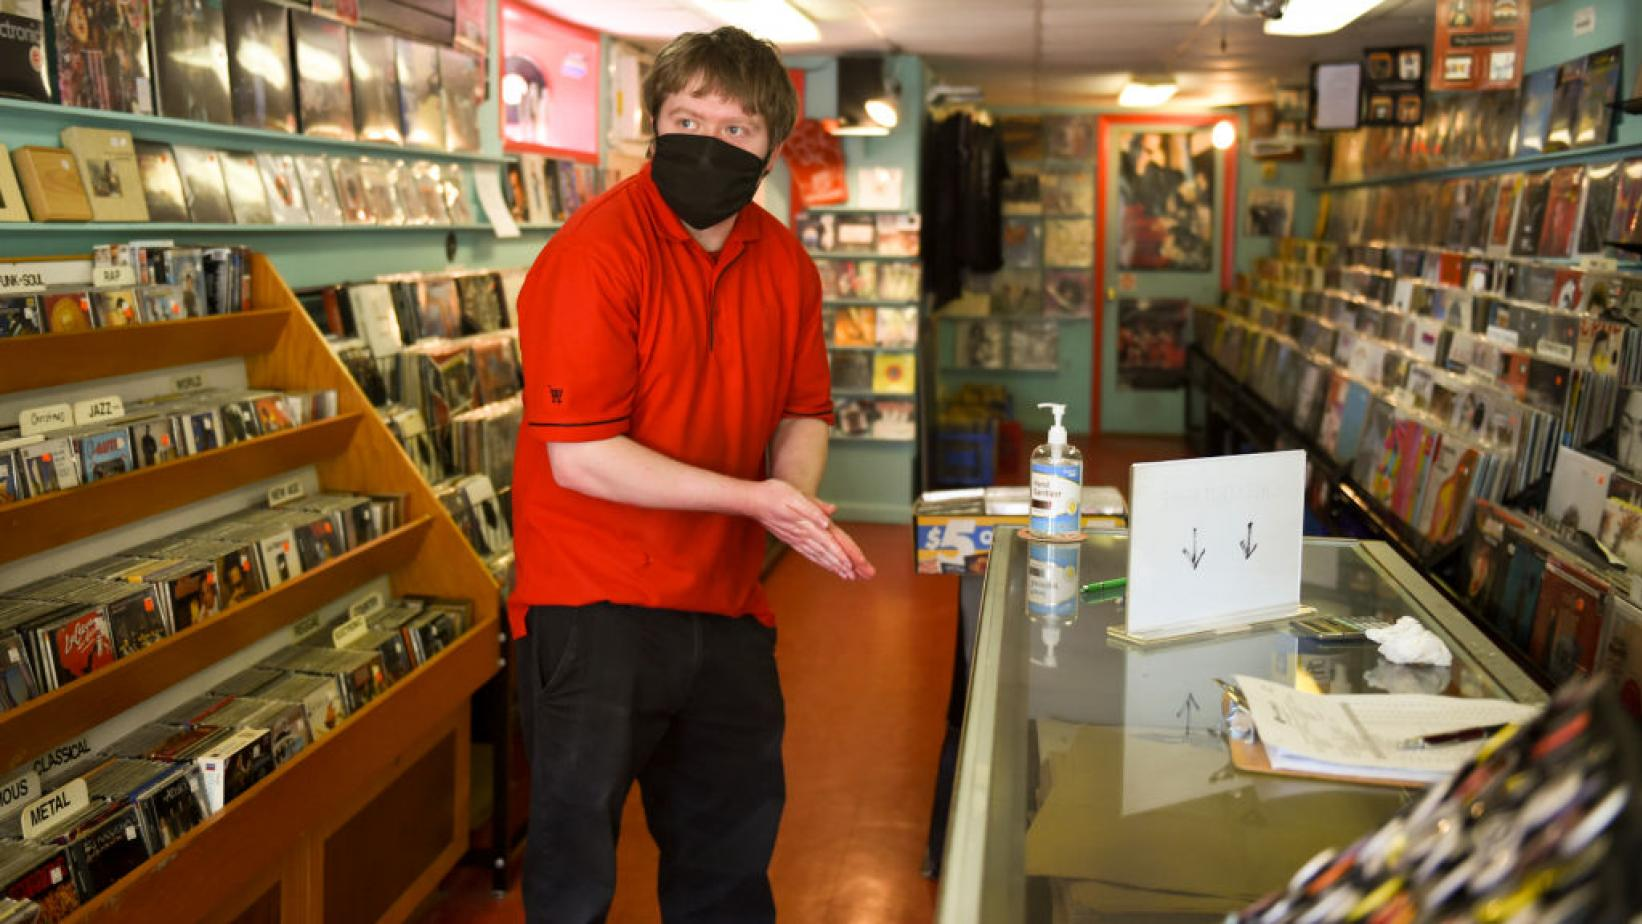 Nick Demangone of Exeter Township sanitizes his hands before browsing records for sale at Vertigo Music in West Reading